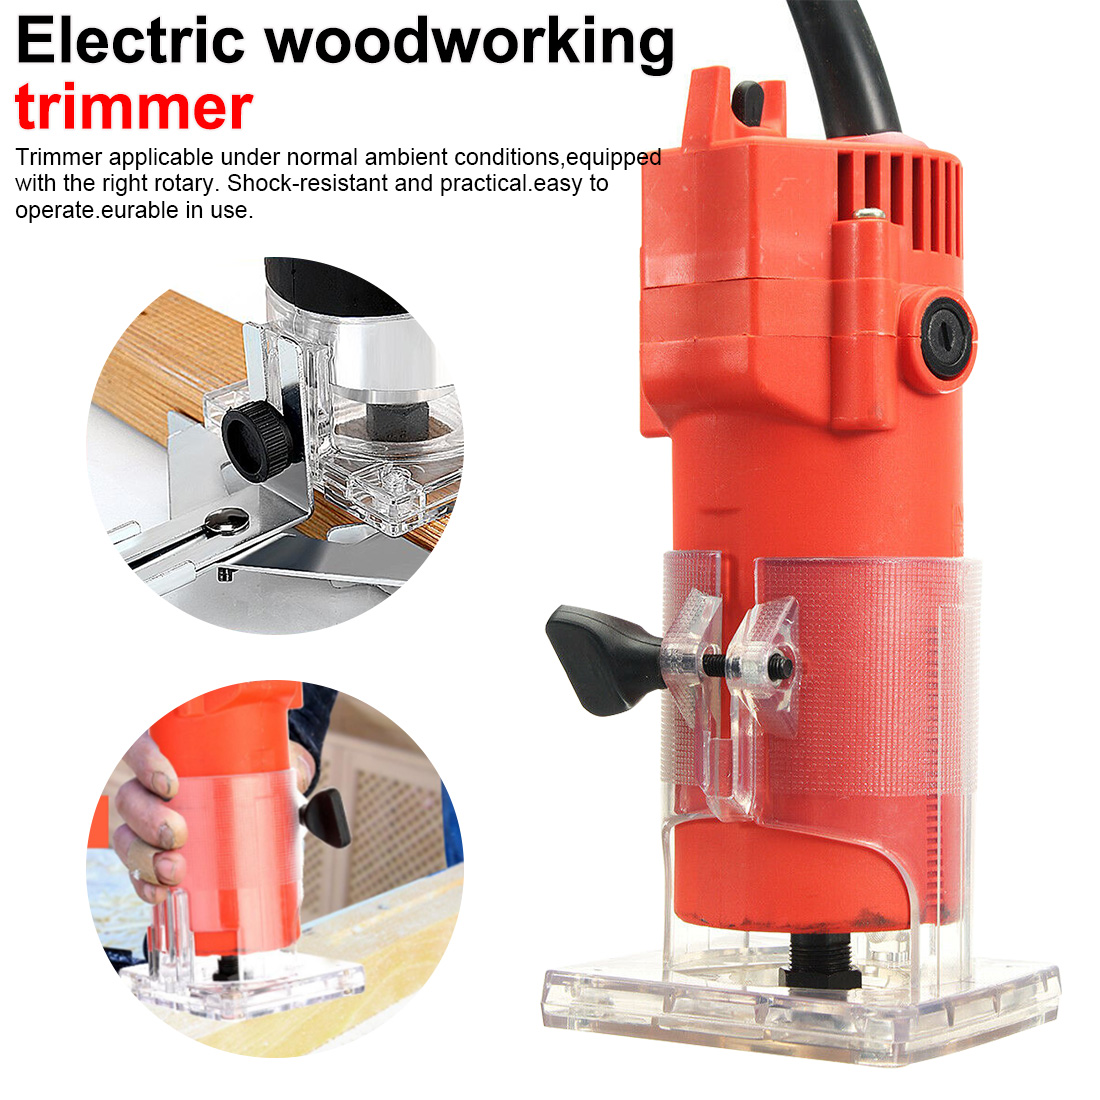 Copper Electric Tool 220V 110V 1300W Wood Laminate Router 30000rpm Trimming Carving Milling Machine For Woodworking